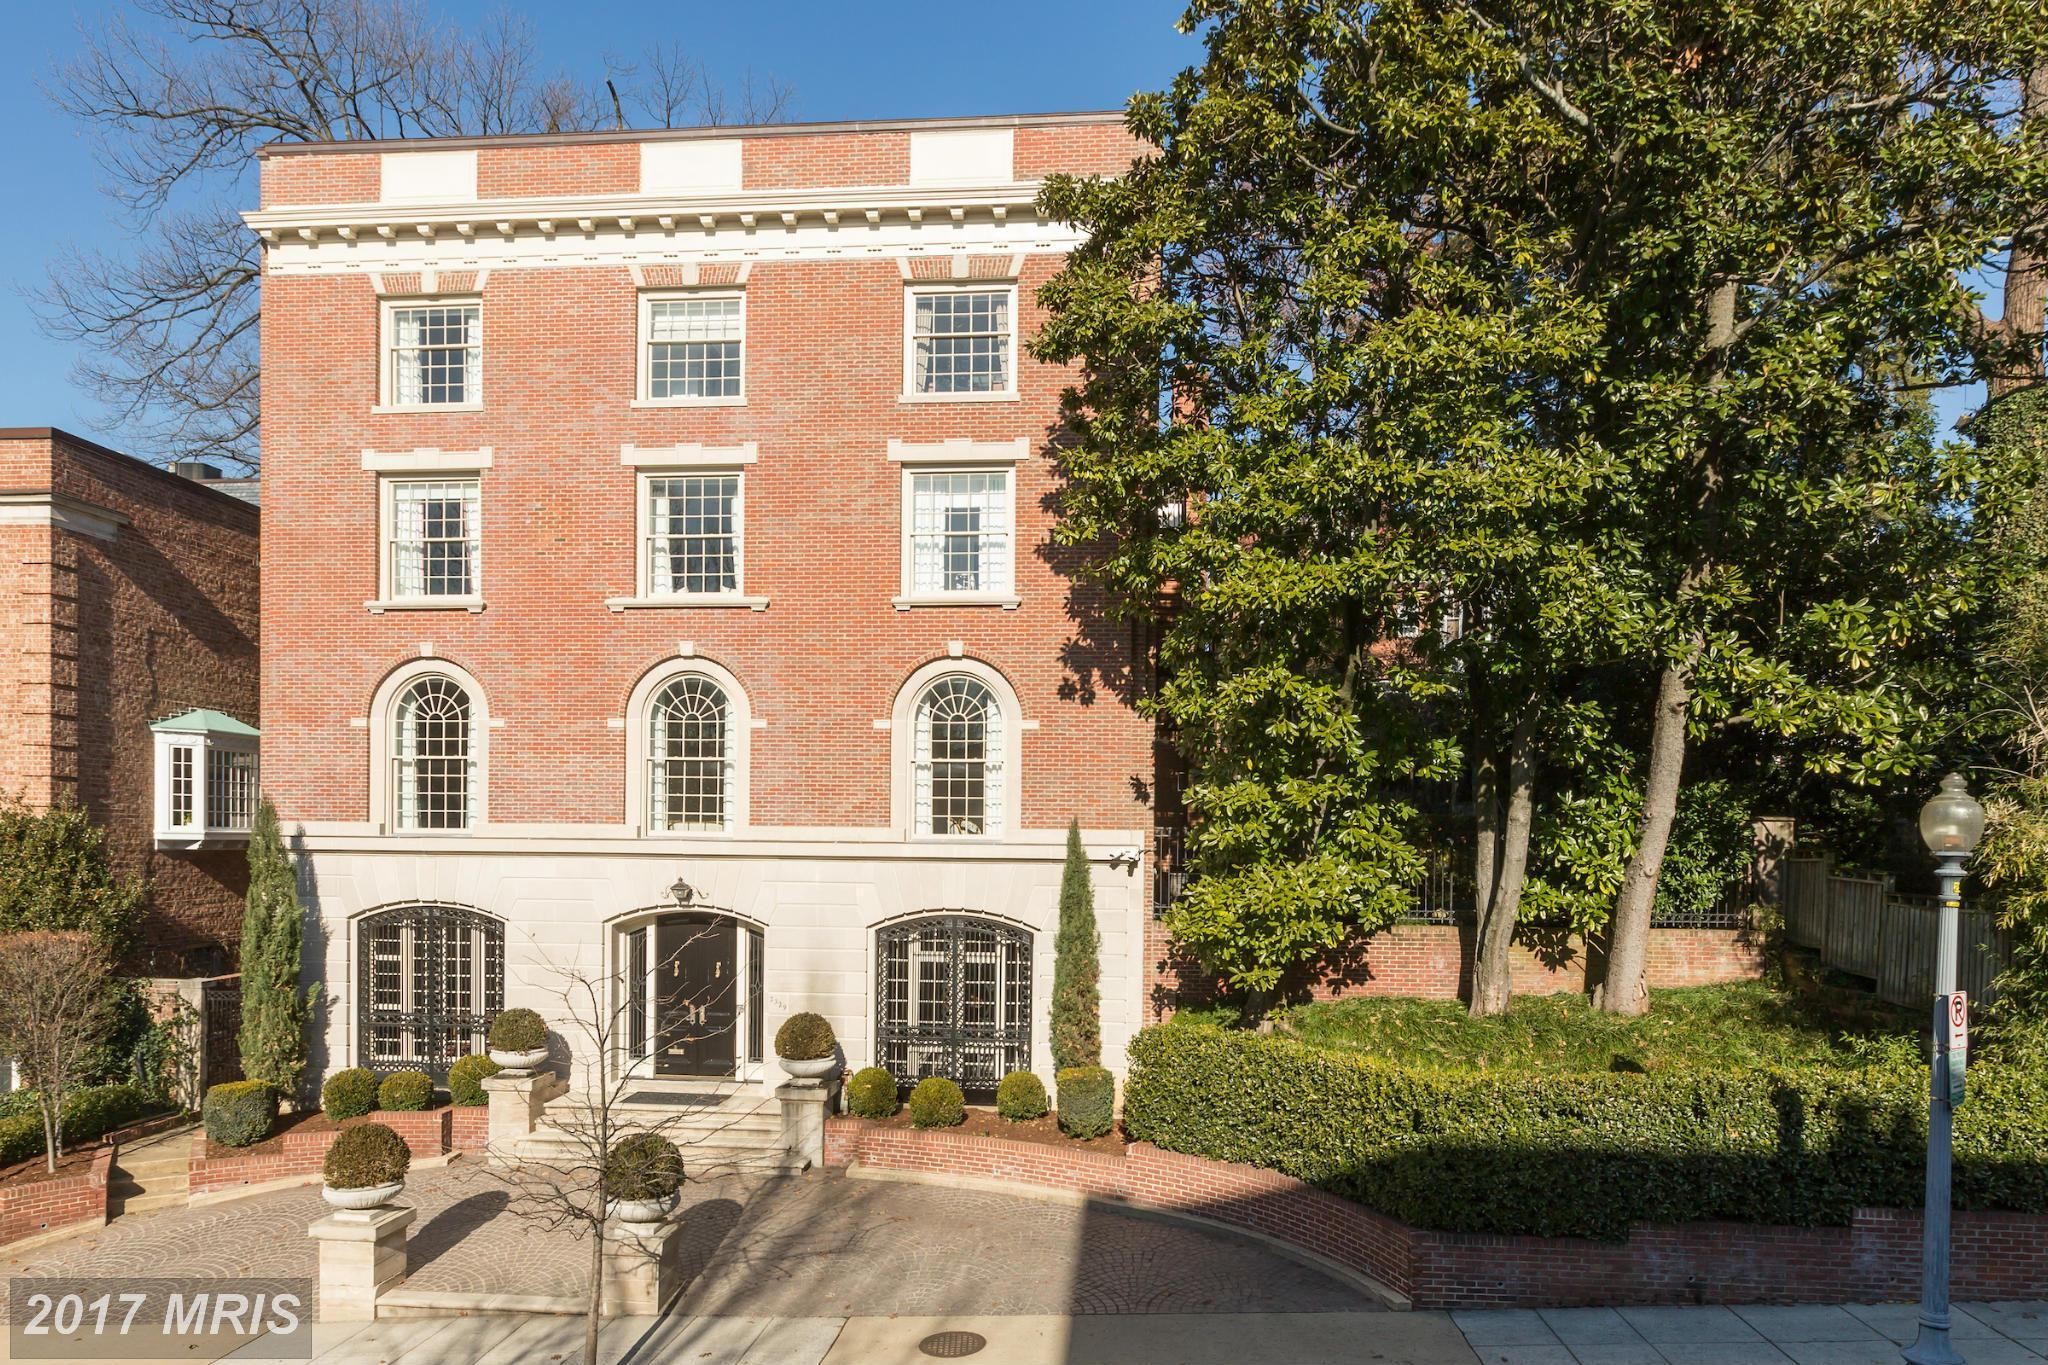 List price: $5,850,000 // Closing price: $5,500,000 // 6 bedrooms, 7 bathrooms // Built in 1919 // Beaux Arts style // Neighborhood: Adams Morgan // Listing agent:{&amp;nbsp;}Michael Rankin of TTR Sotheby's // Selling agent: James Bell of TTR Sotheby's (Image: Courtesy Bright MLS)<br><p></p>